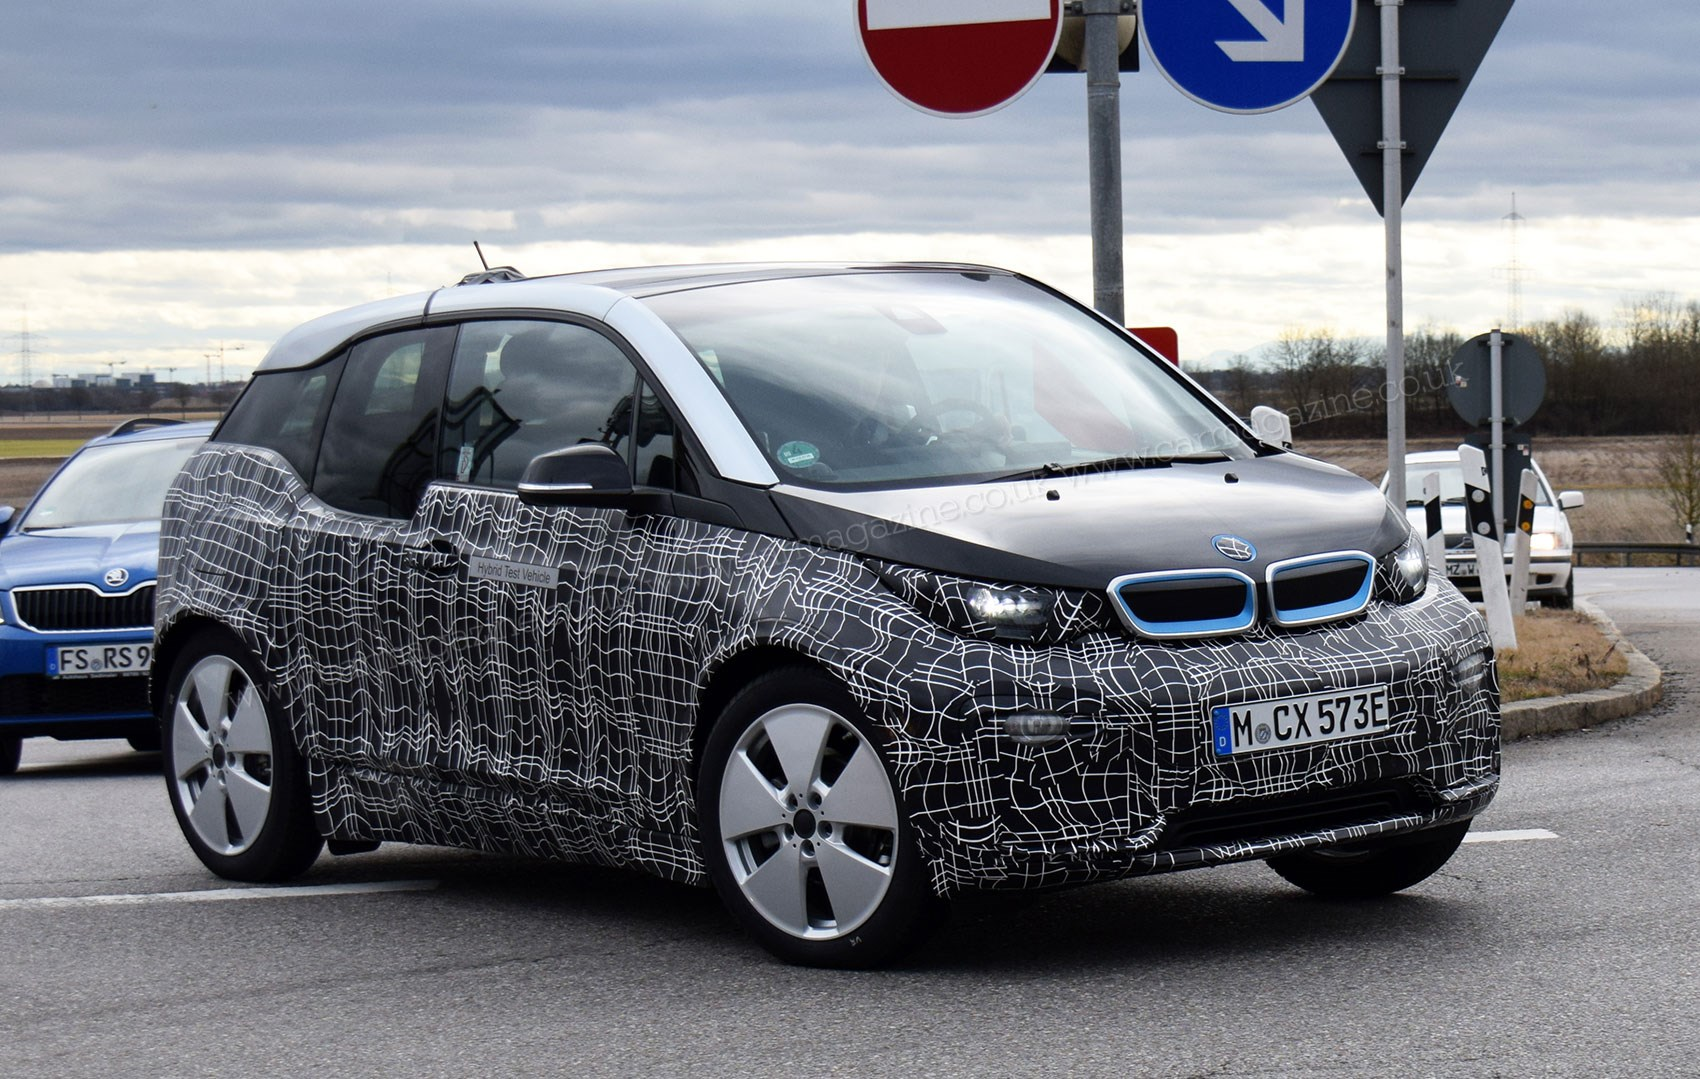 Note New Two Piece Tailgate For 2018 Bmw I3 Electric Car